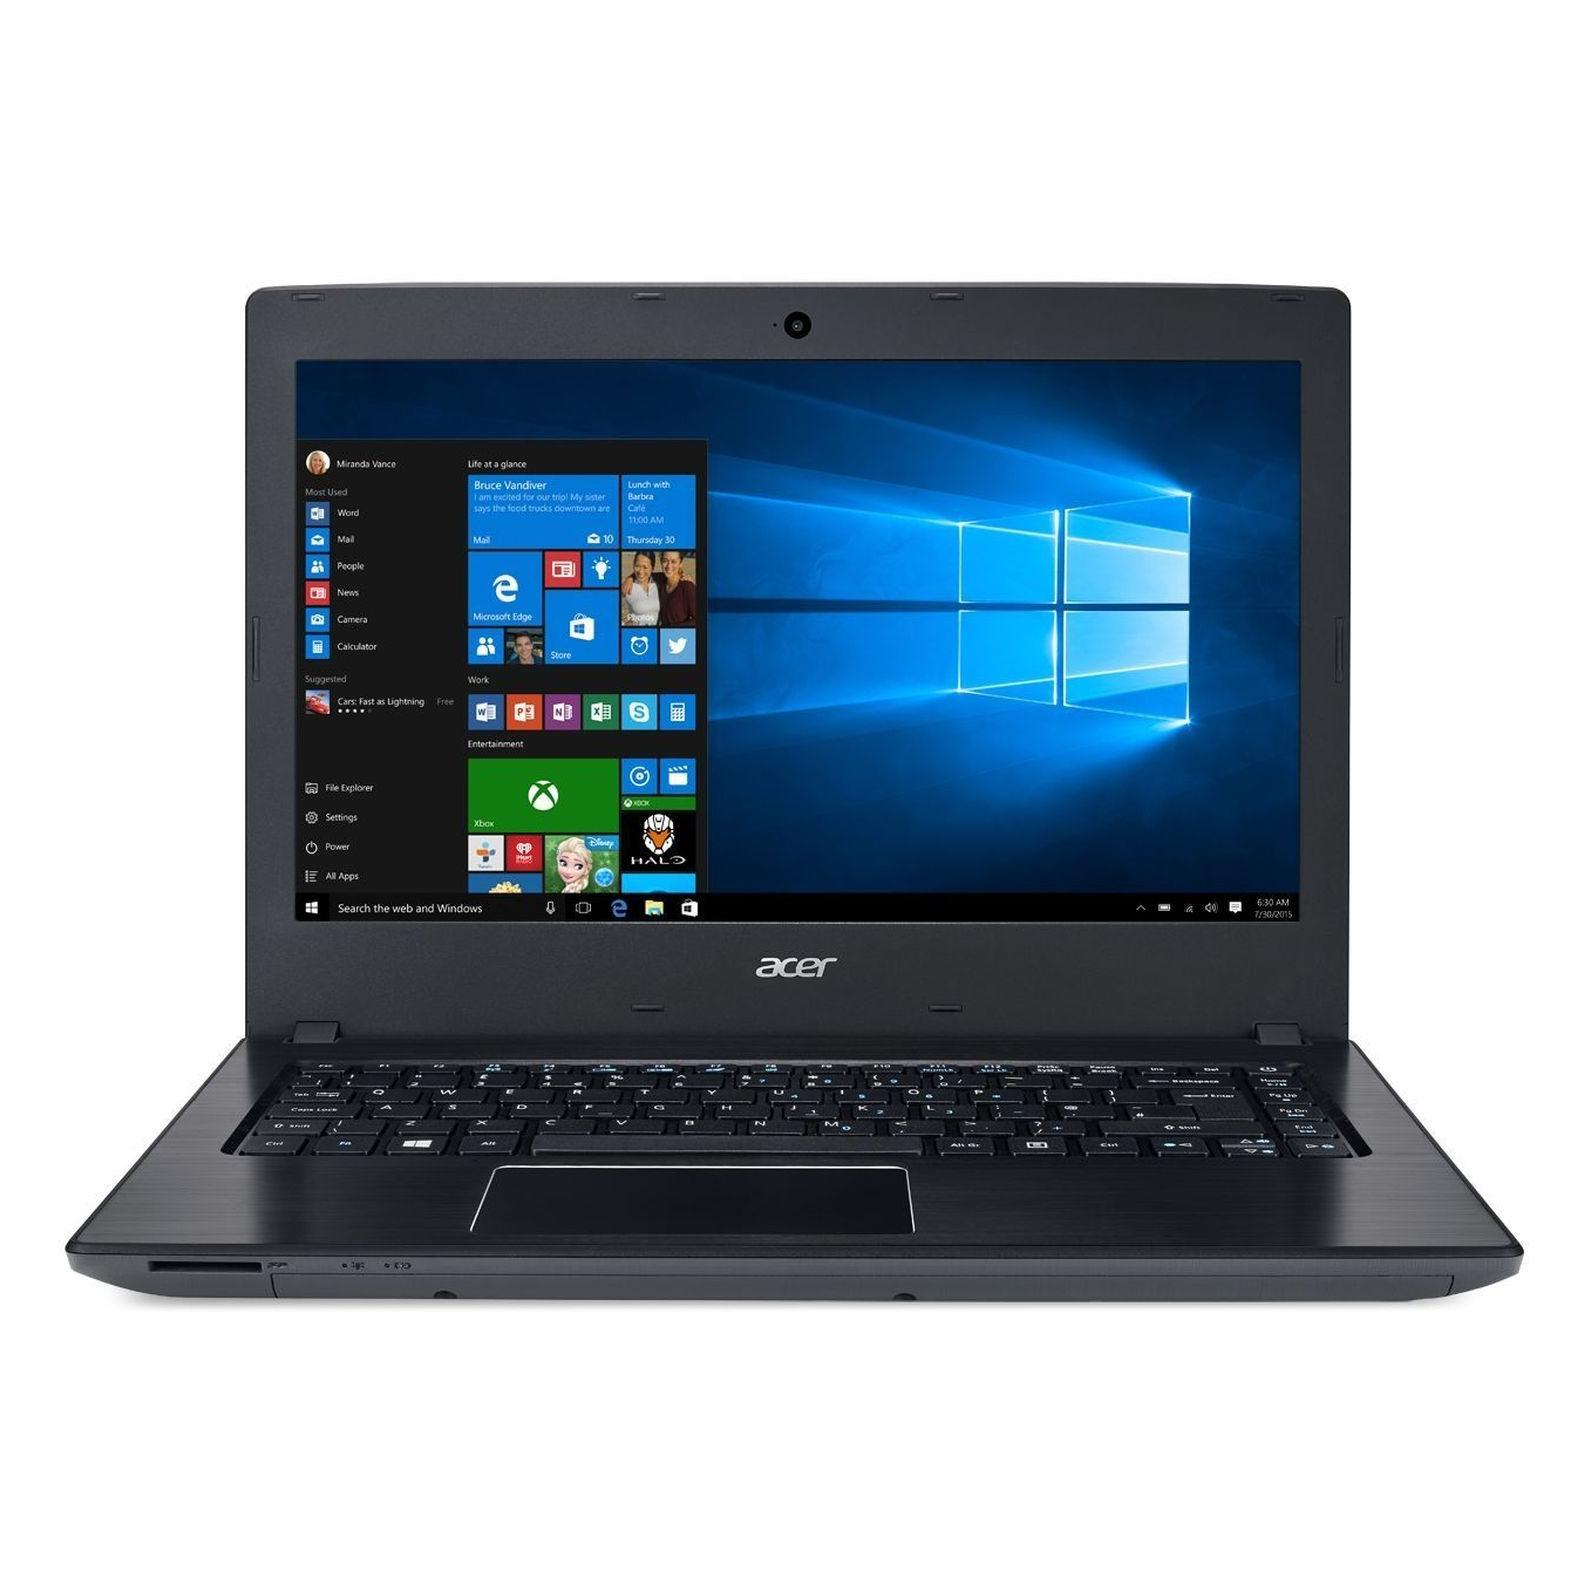 Acer E5-476G-55Y2 ASPIRE 14 HD LED backlit TFT LCD 4GB DDR4 RAM, 1TB HDD 8th gen Intel® Core™  i5-8250U processor (Up to 3.4GHz, 6MB smart cache) Windows 10 Home NVIDIA® GeForce® MX130 (2GB GDDR5 VRAM) DVD-Writer DL drive WIN10